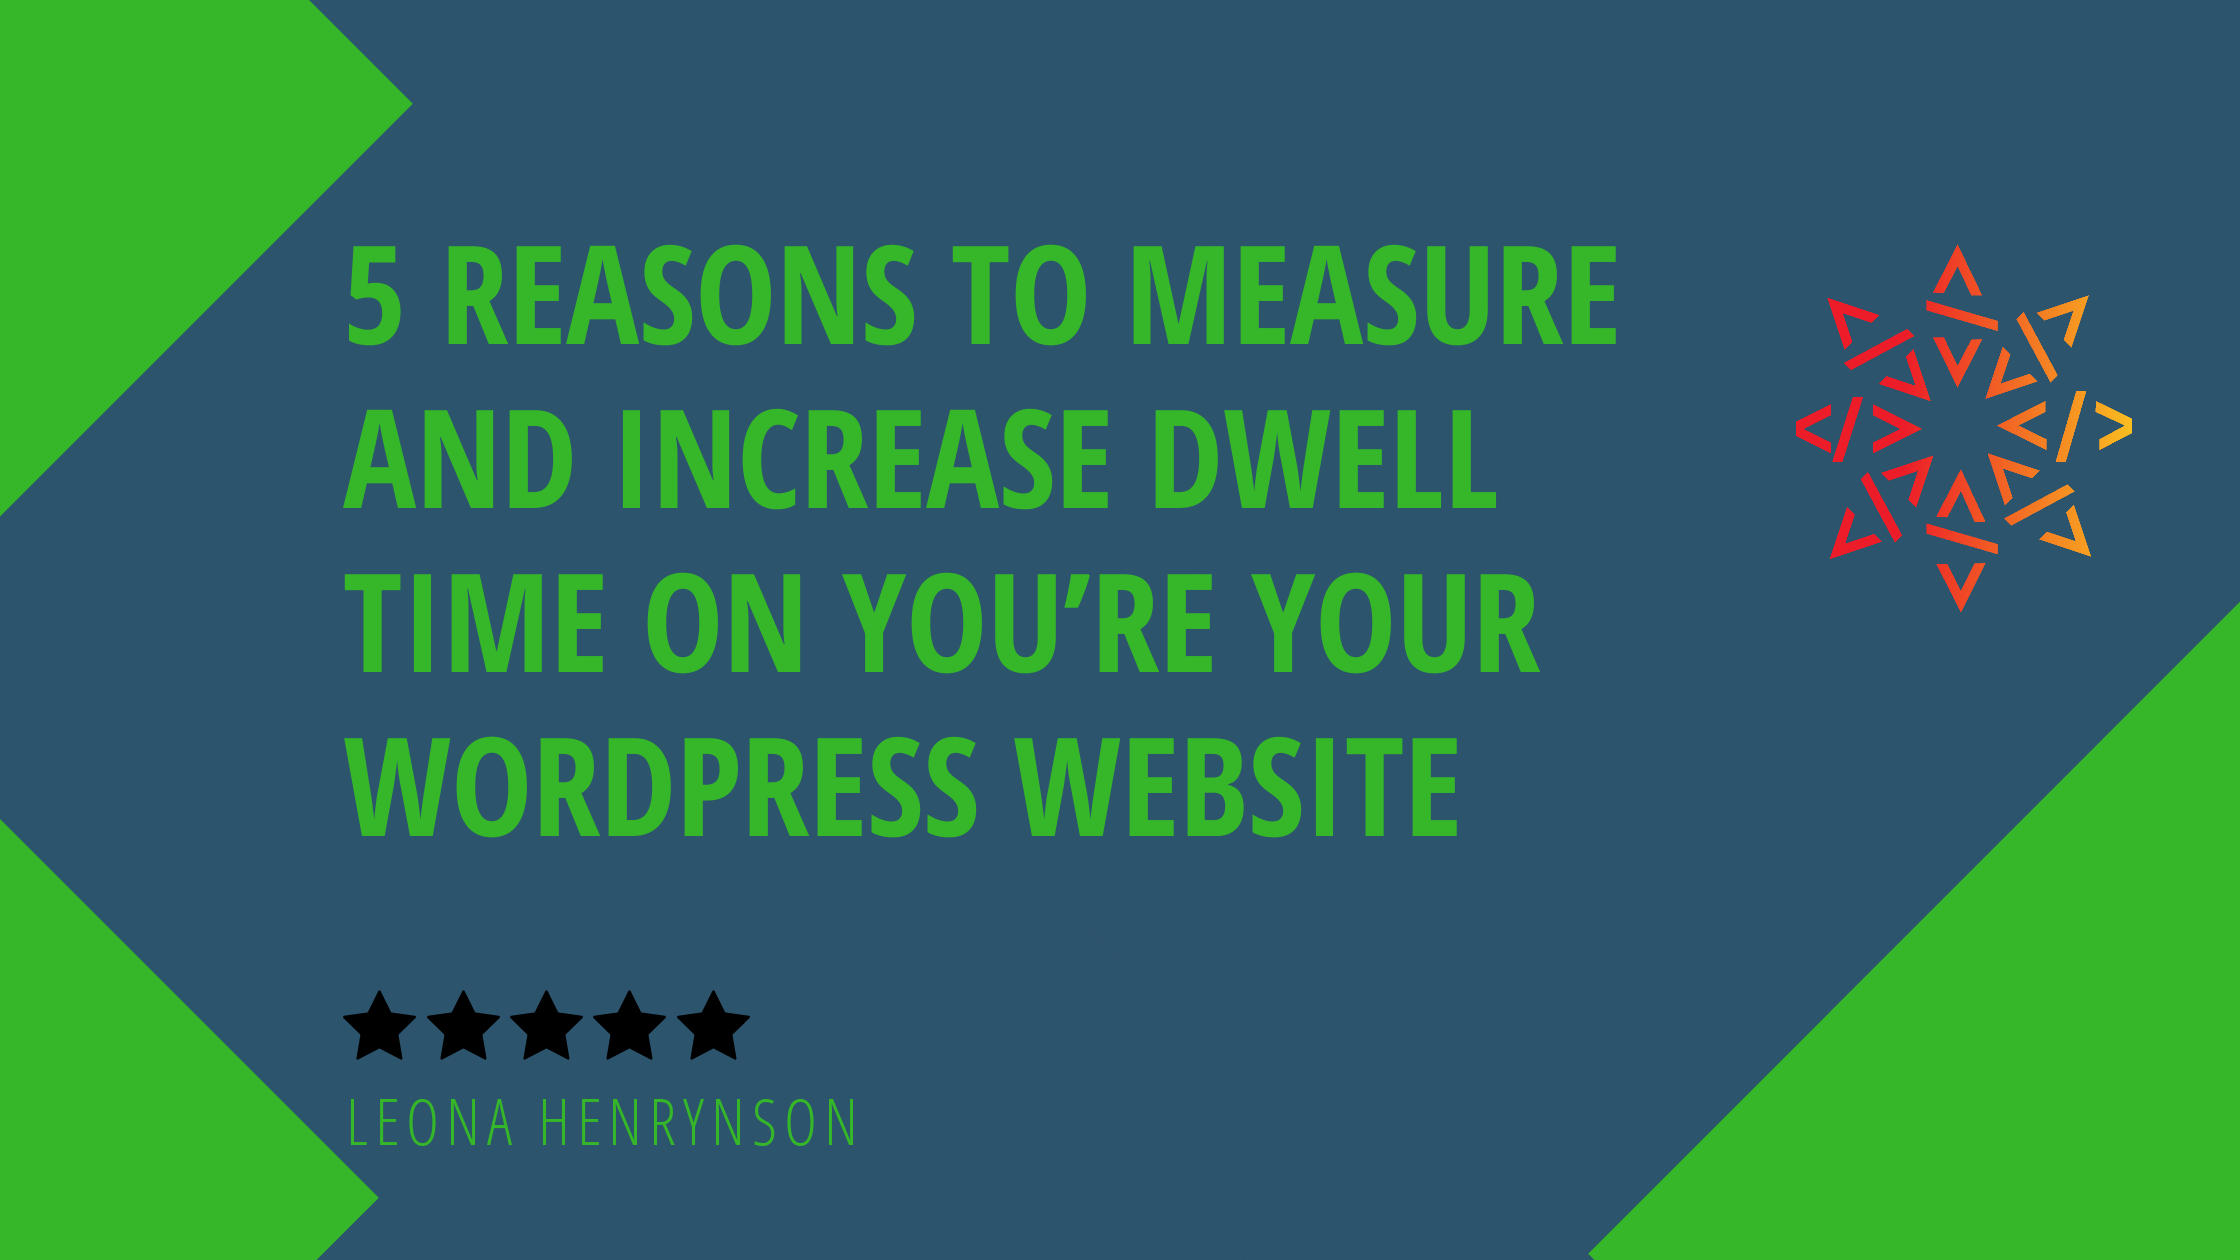 5 Reasons to Measure and Increase Dwell Time on You're your WordPress Website